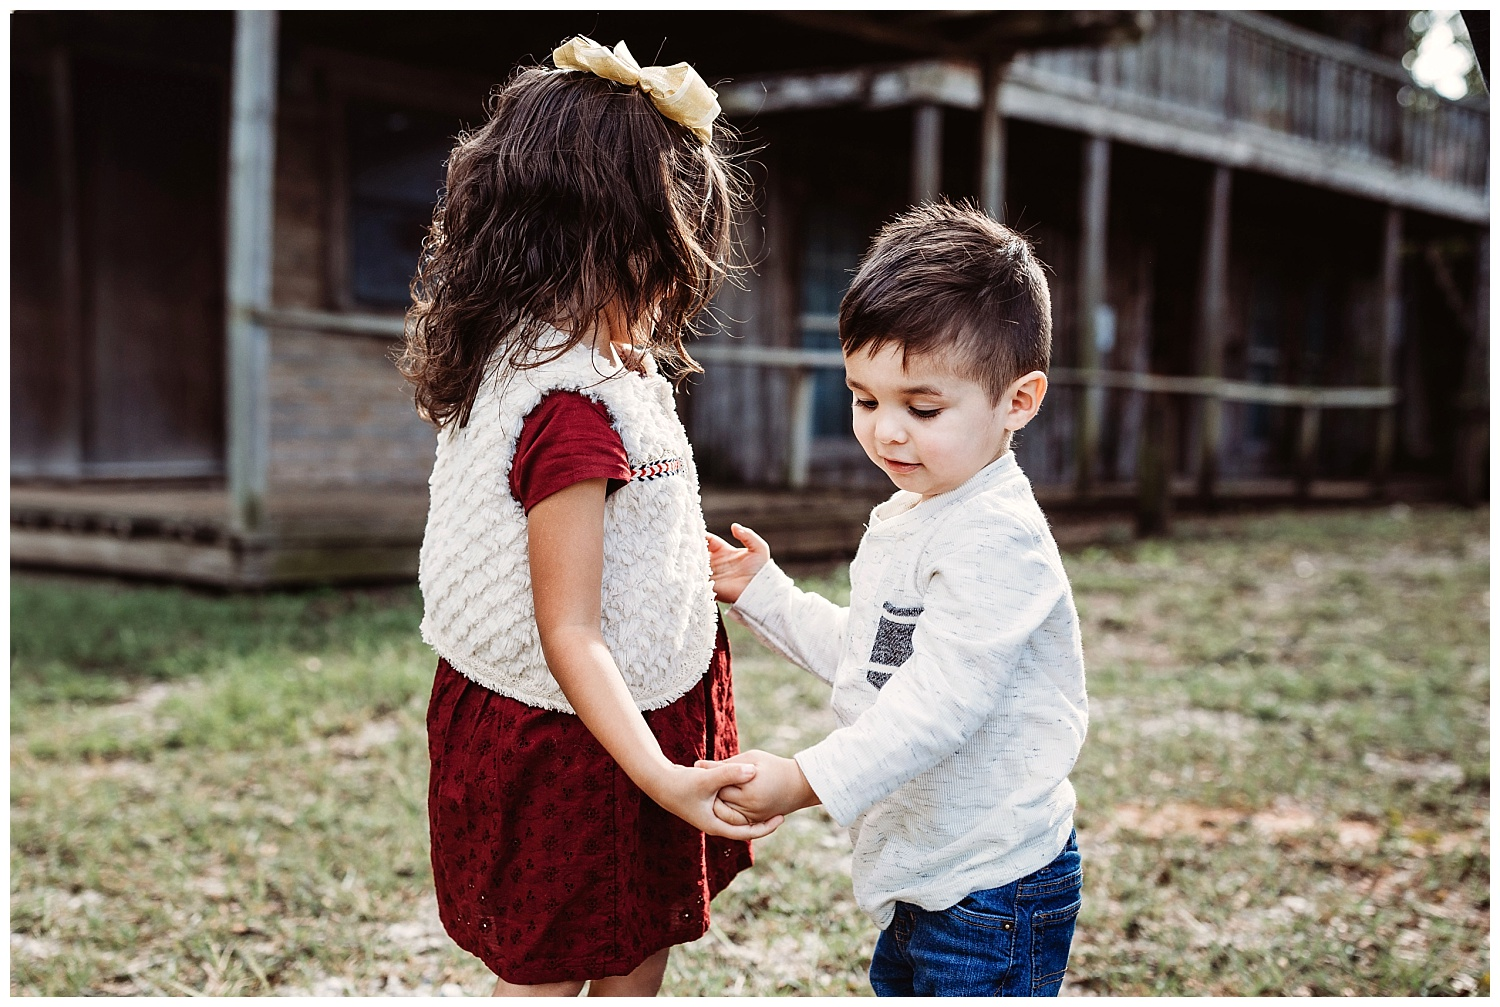 Brother and Sister holding hands, lifestyle family photography. Outdoor family photo shoot in Arcadia, OK.